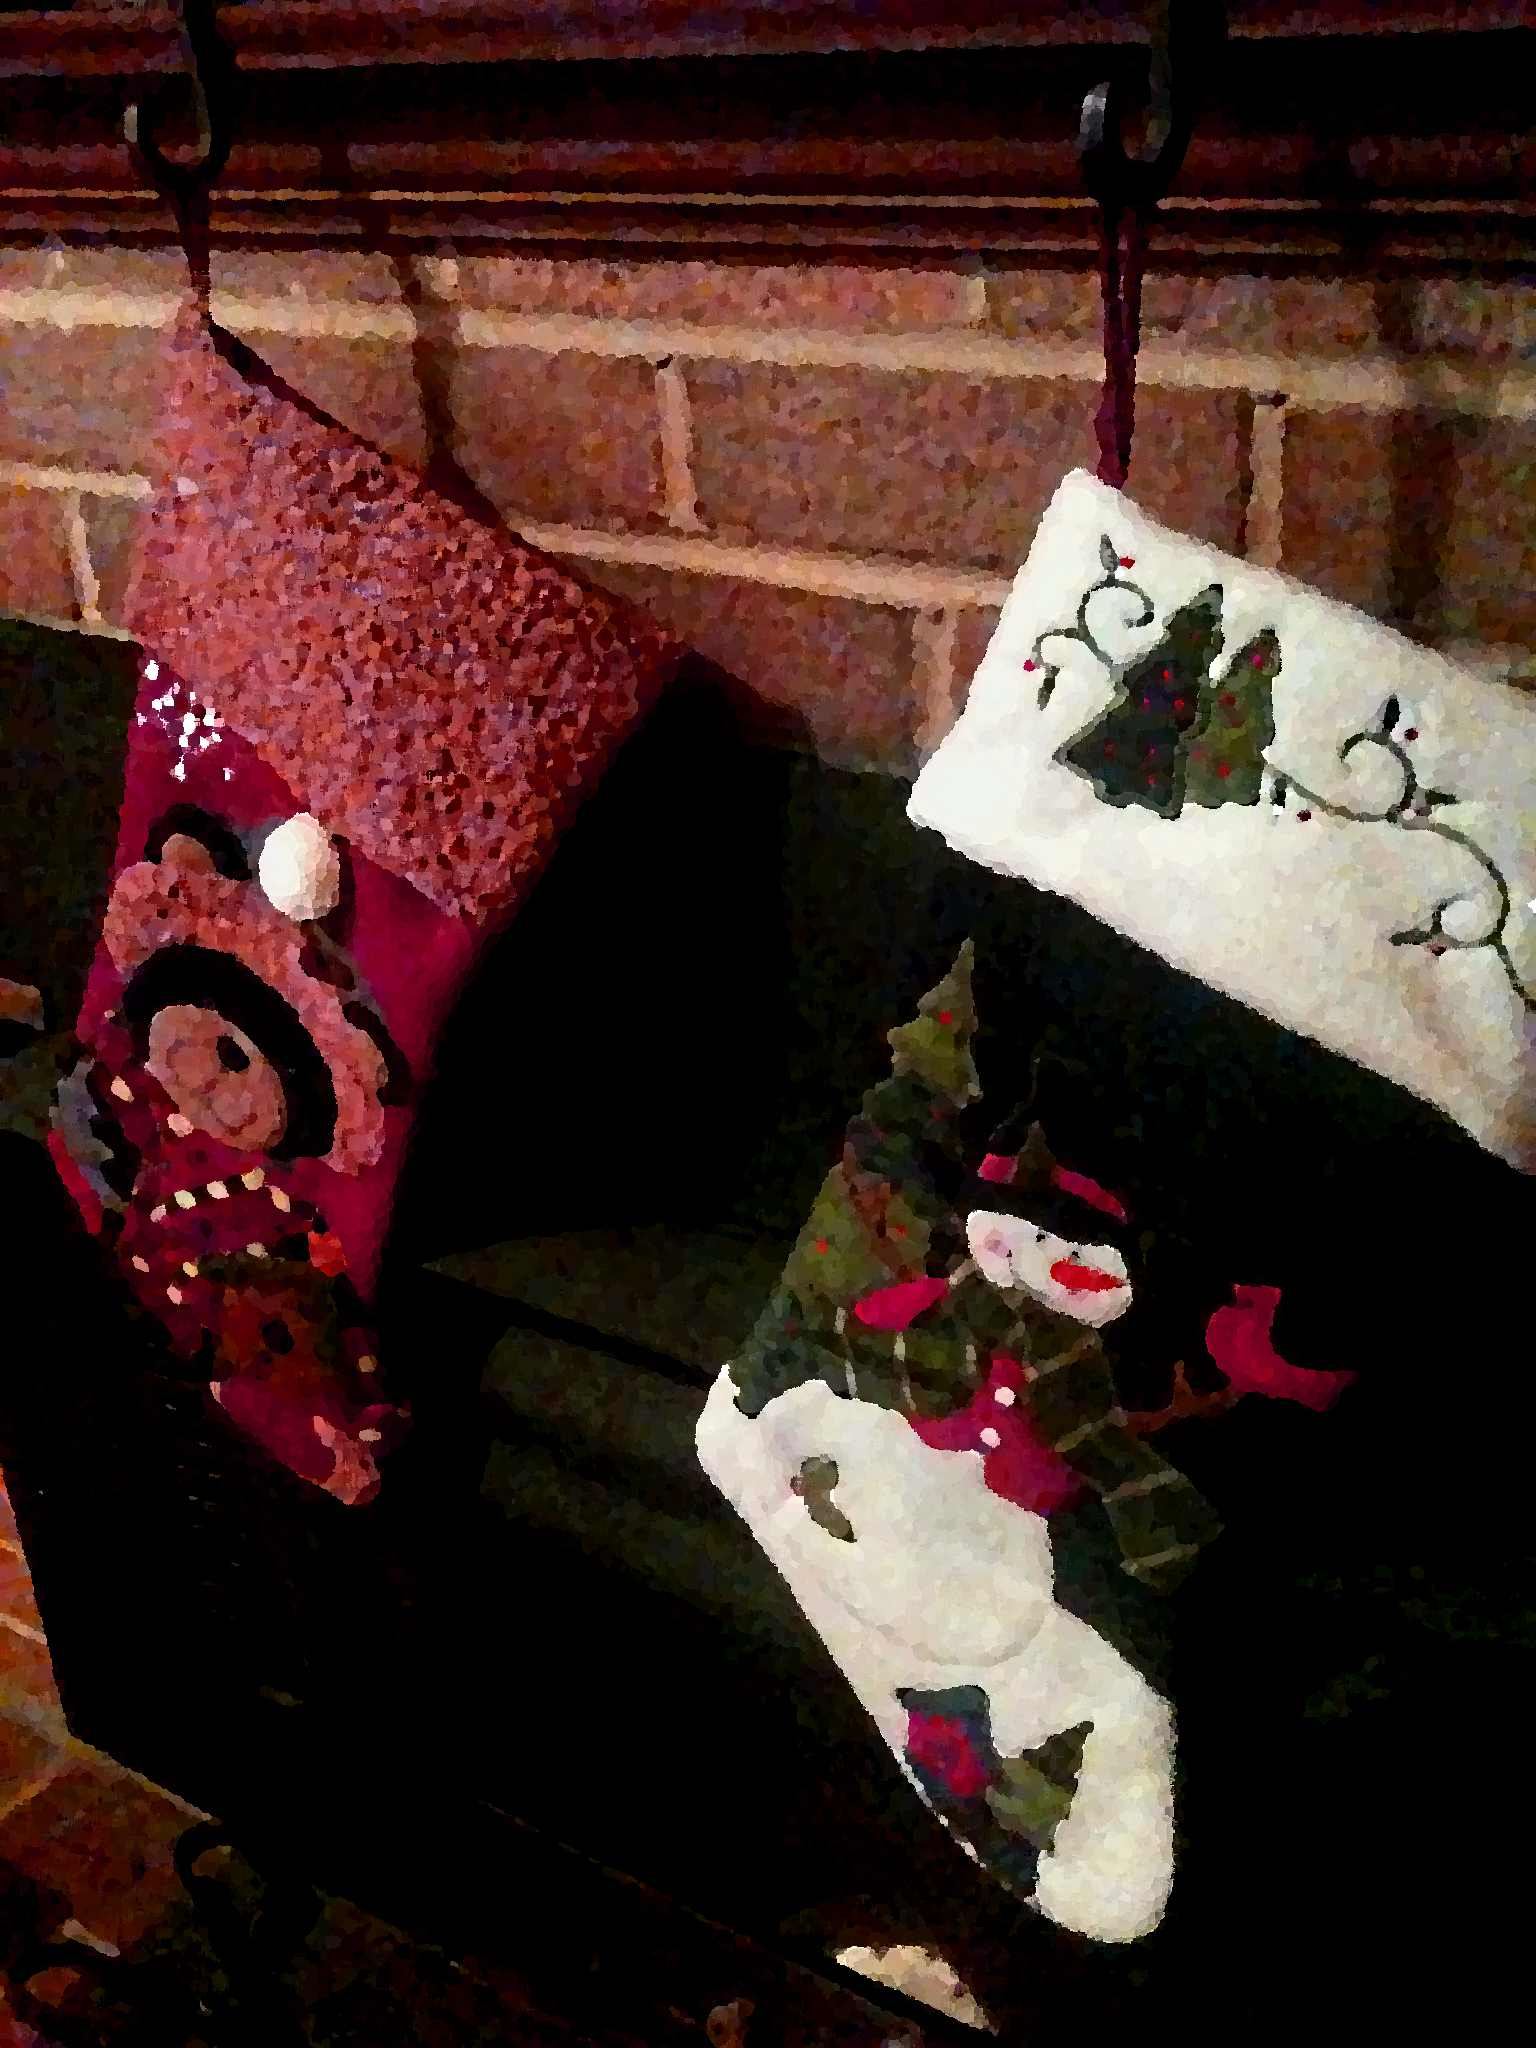 the stockings were hung